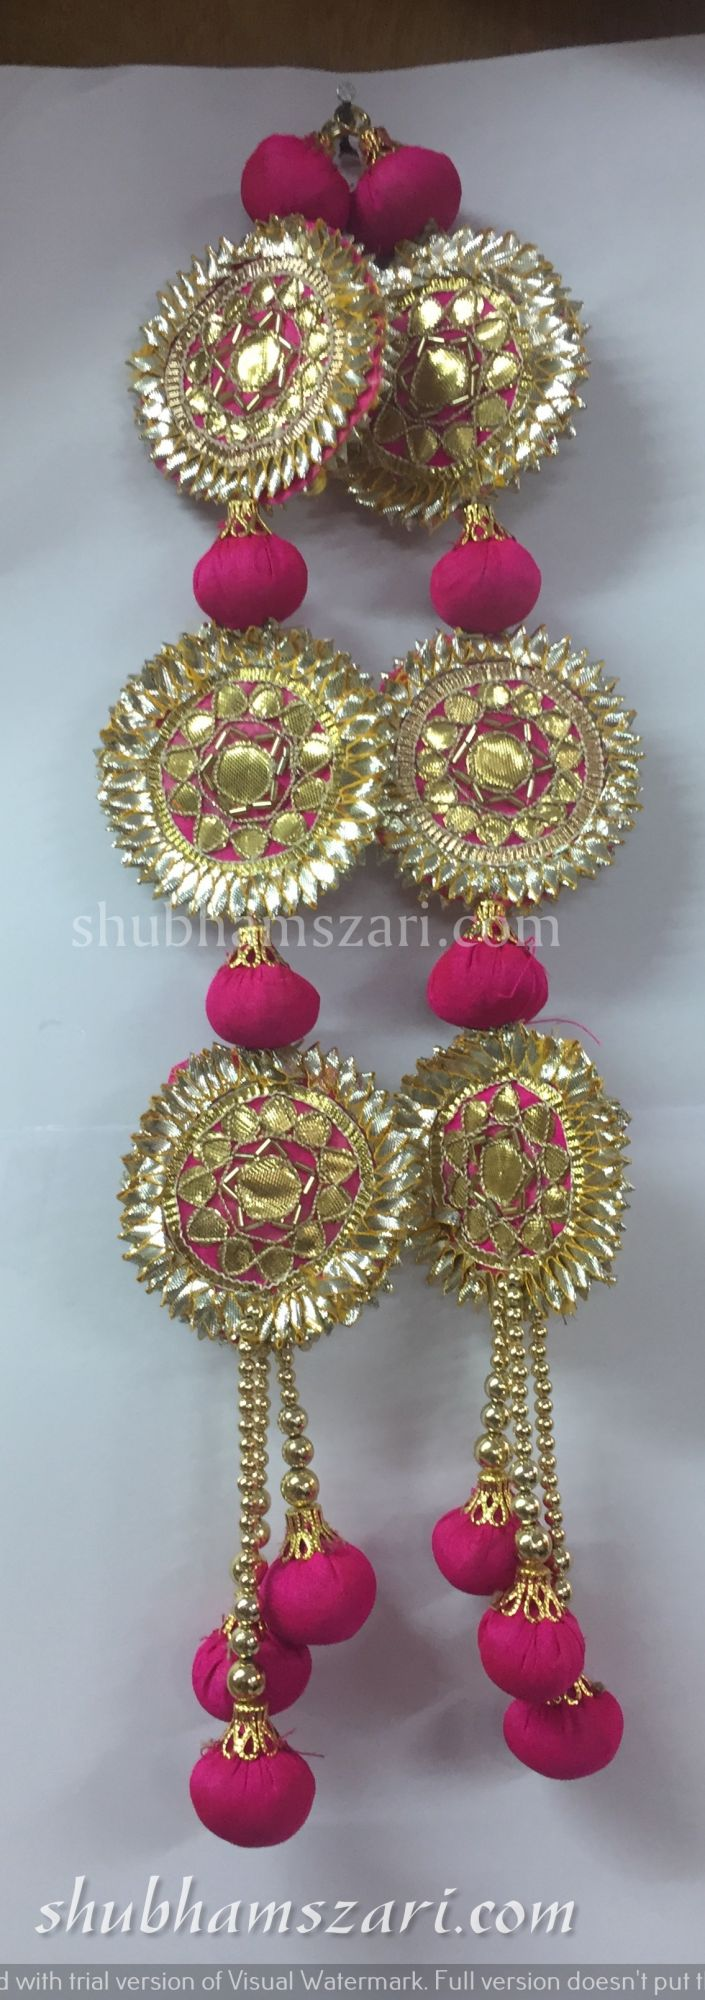 Shubhams long rani colour full round sikka shape gota patti work